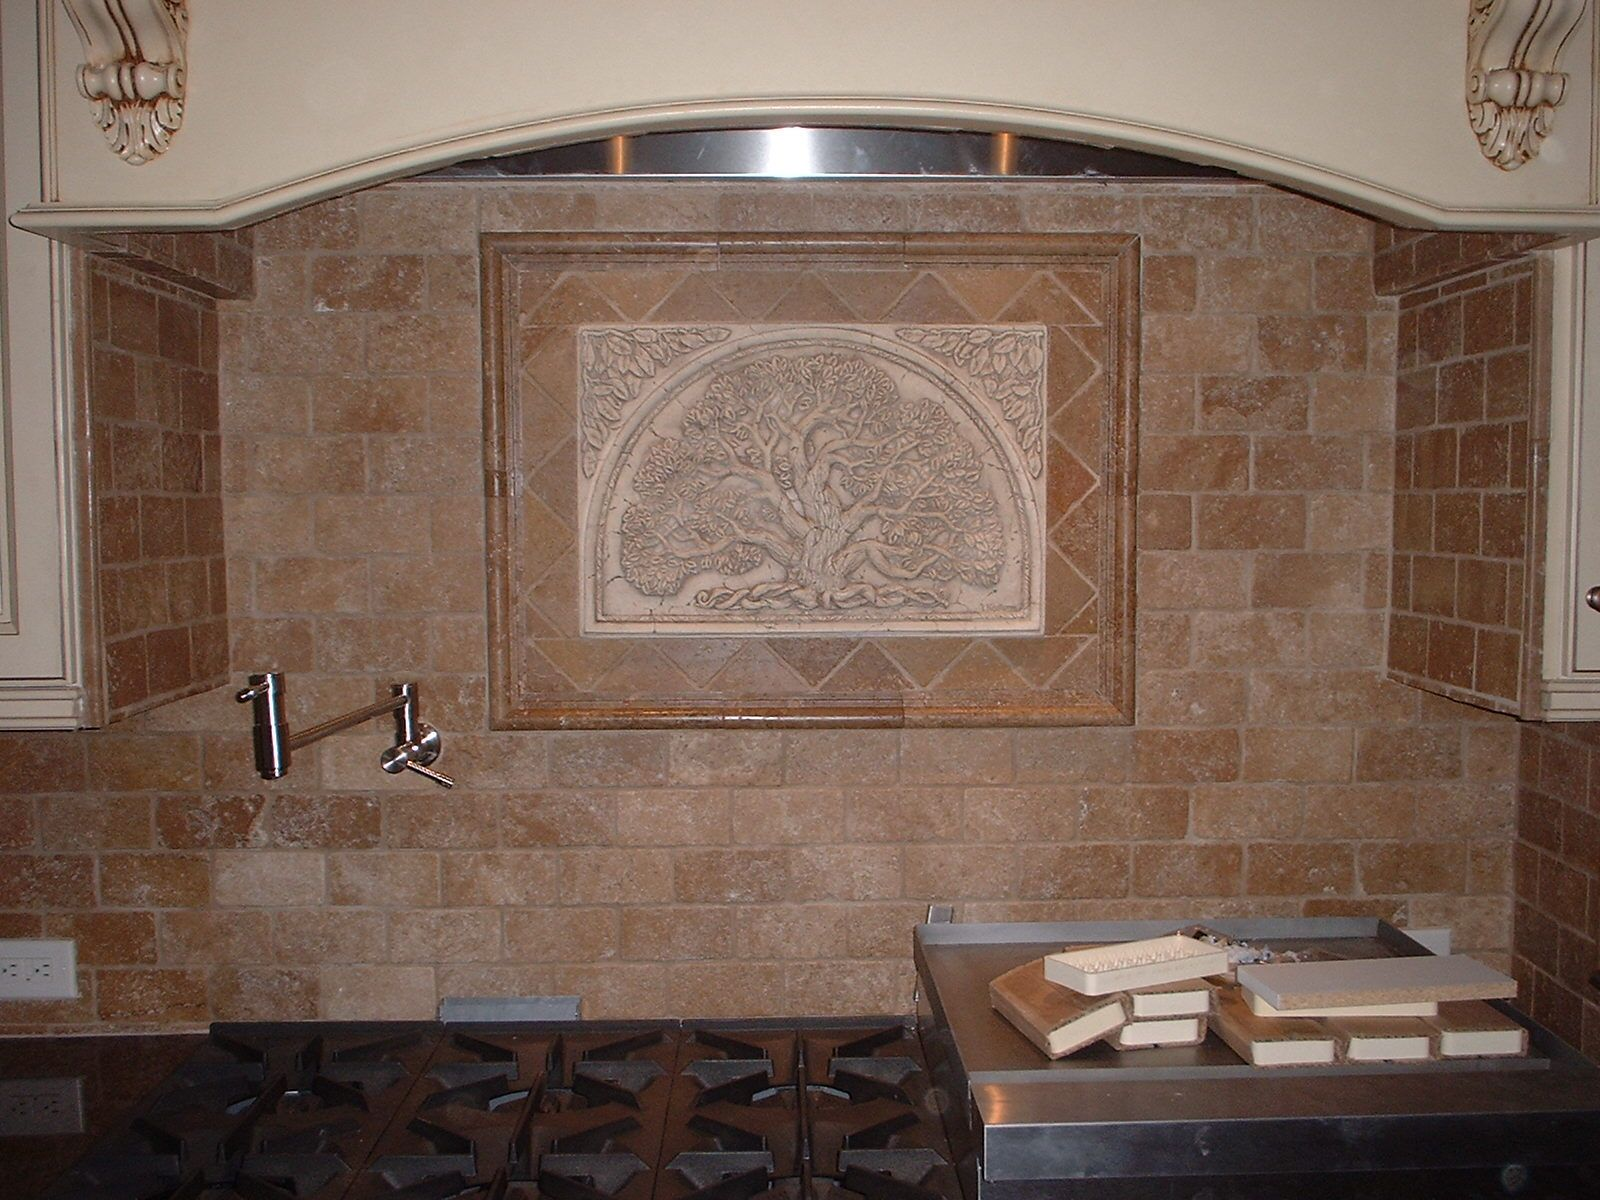 Wallpaper Kitchen Backsplash Ideas Backsplash Designs Pictures Download Wallpaper Tile Backsplash Ideas